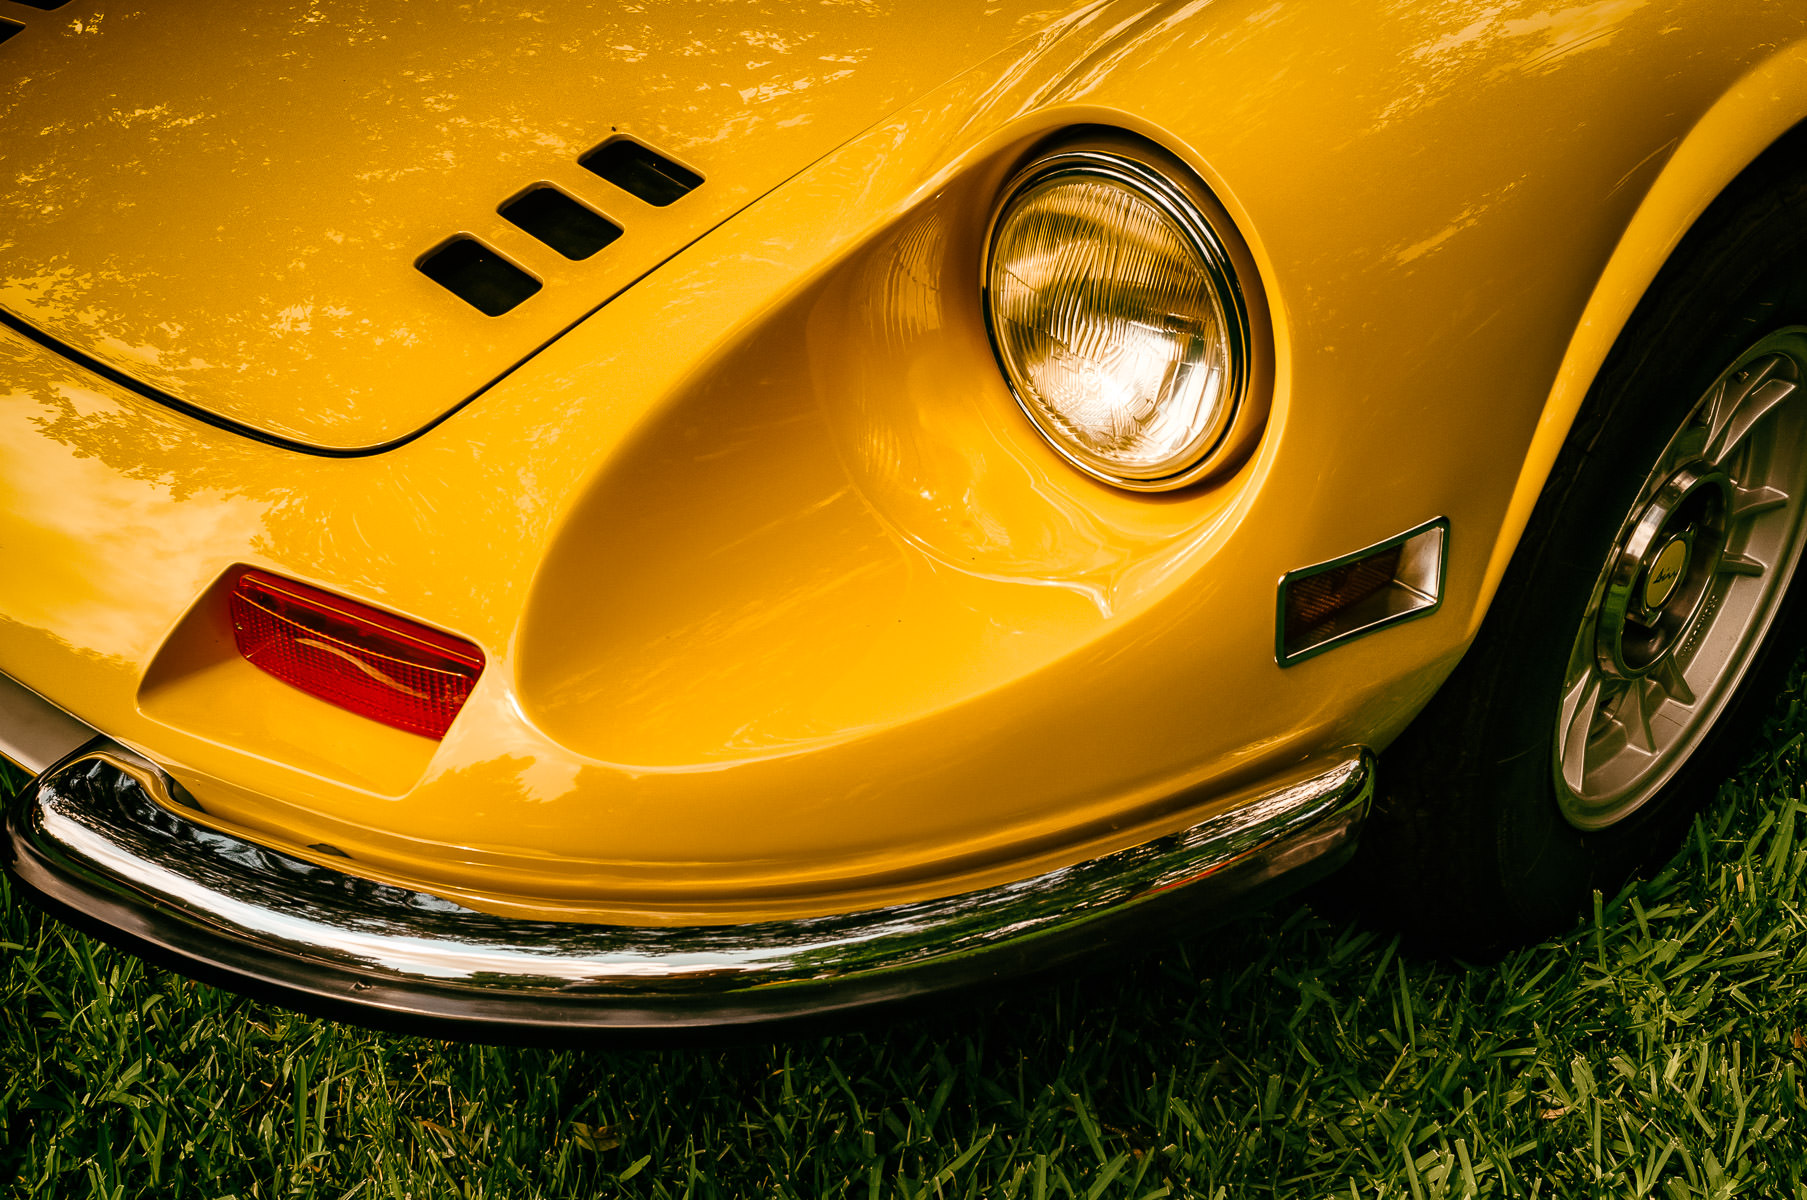 Detail of a classic Ferrari Dino 246 GT, spotted at a Dallas, Texas, area car show.